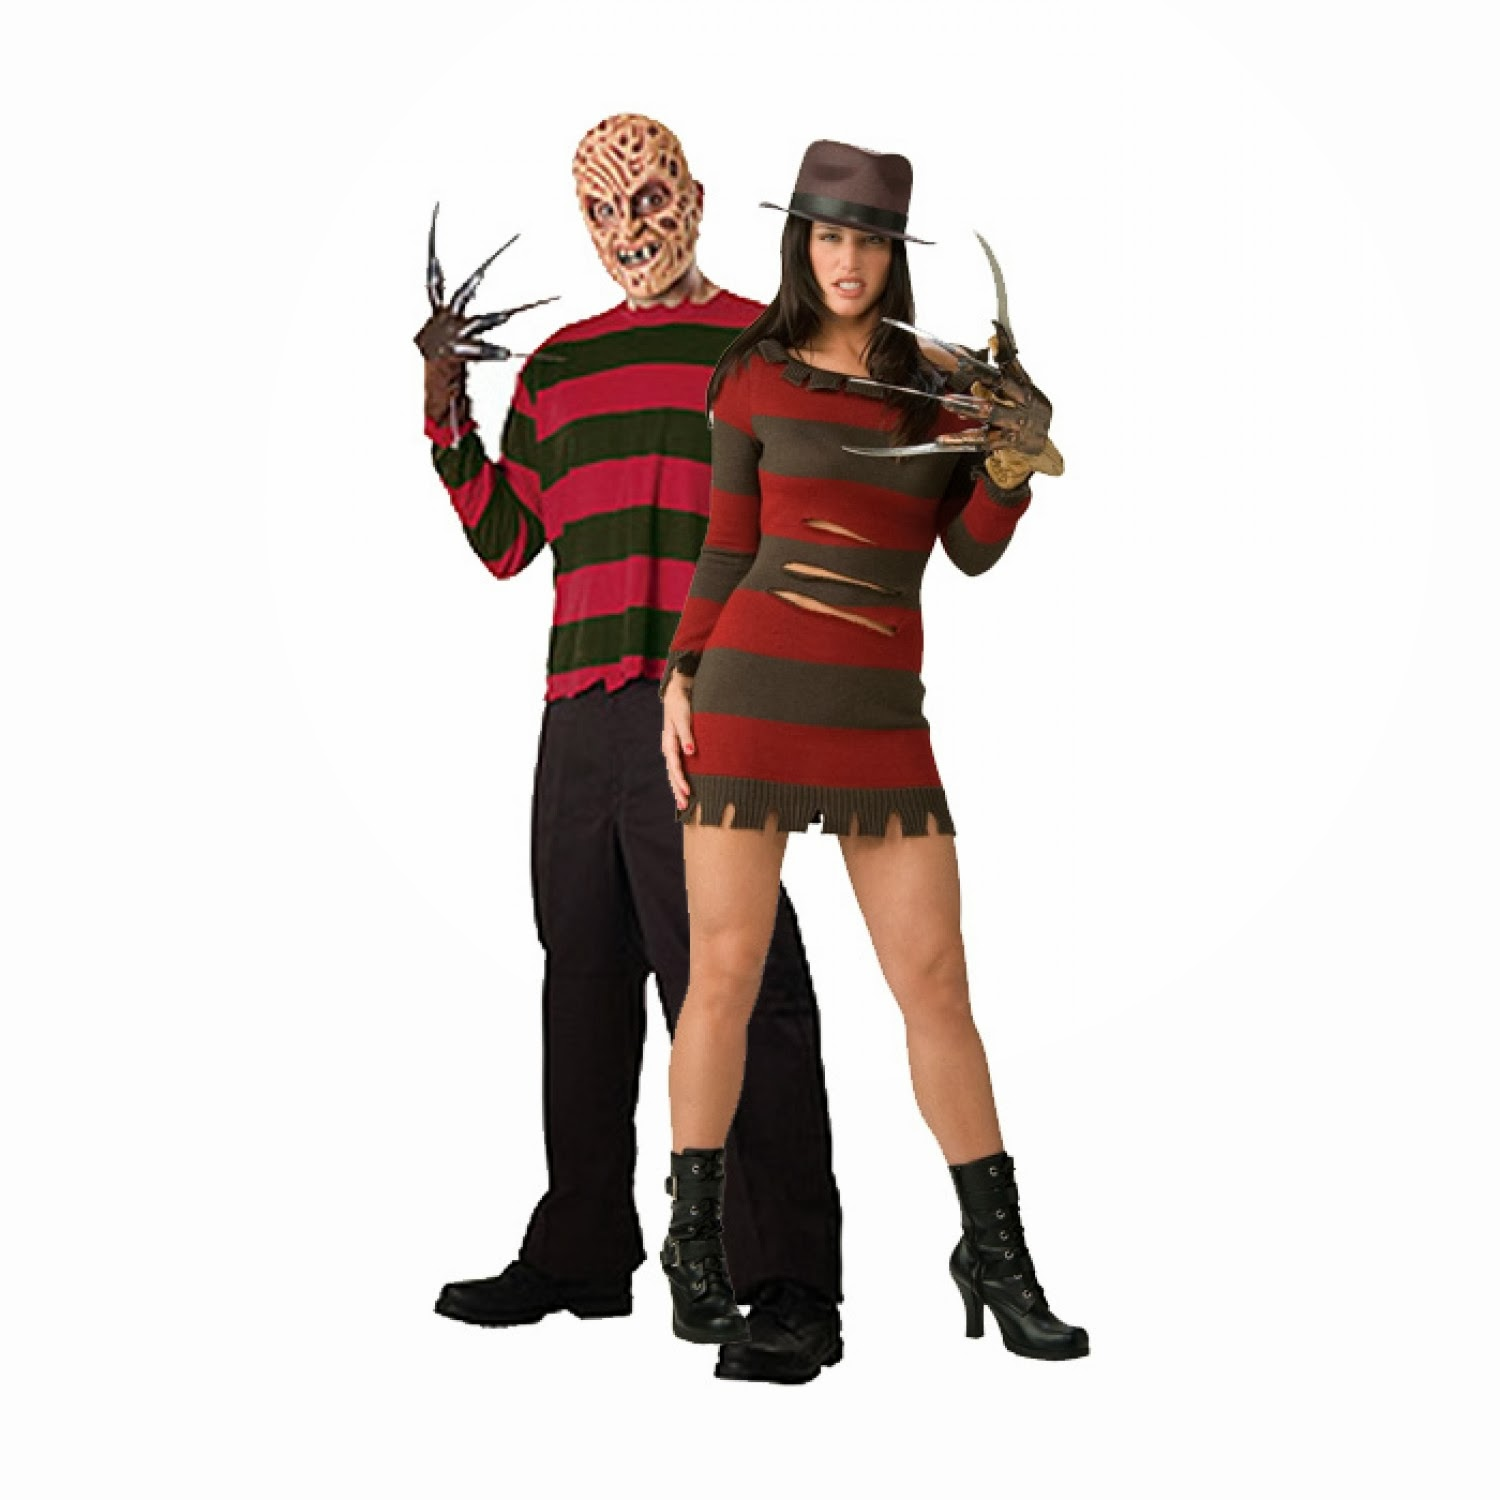 Freddy Krueger Costume Images - Reverse Search